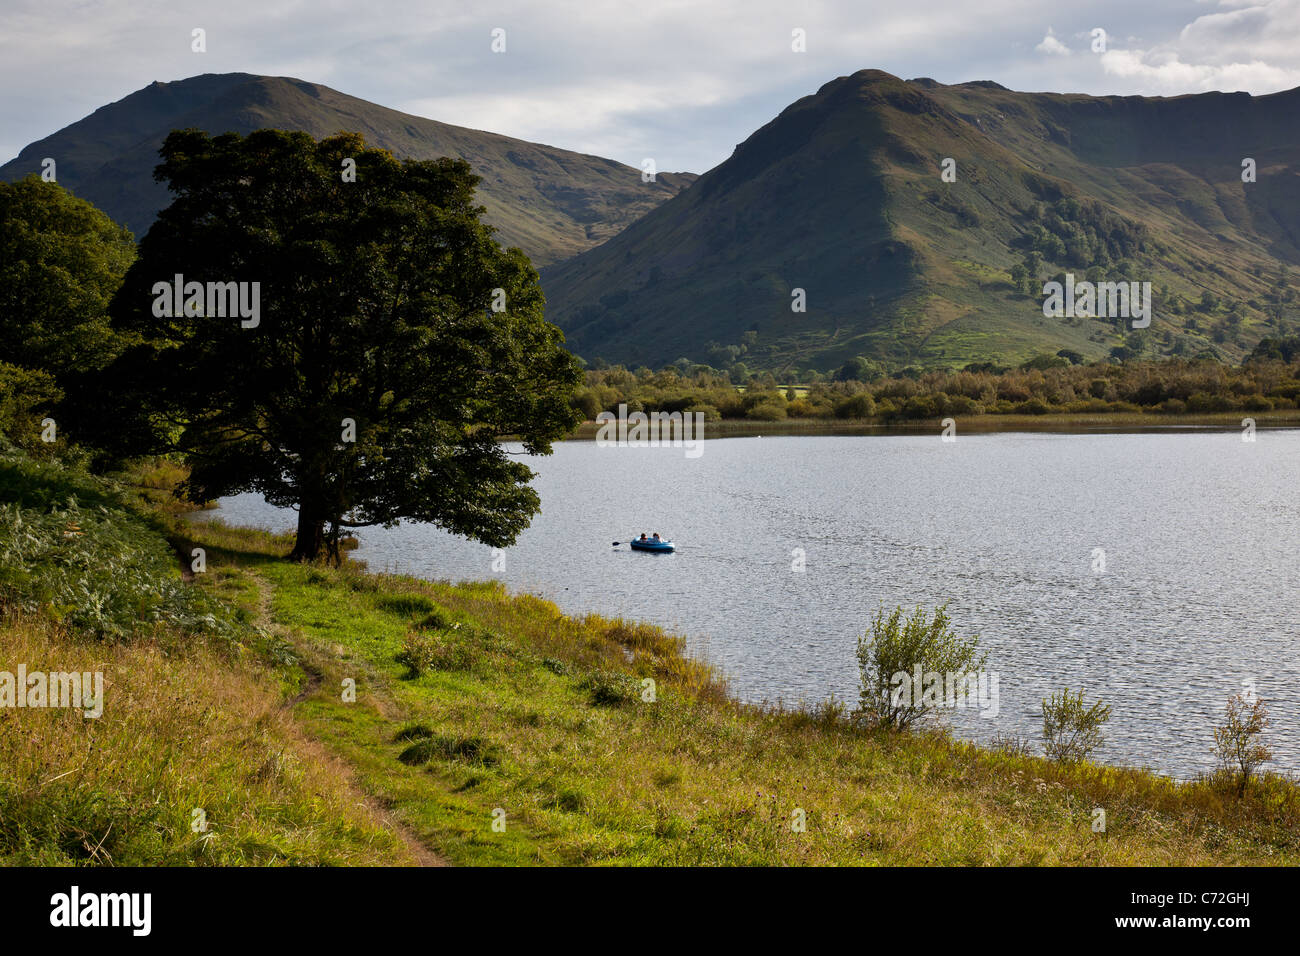 Brothers Water with High Hartsop Dodd in the background, near Patterdale, Lake District National Park, Cumbria - Stock Image